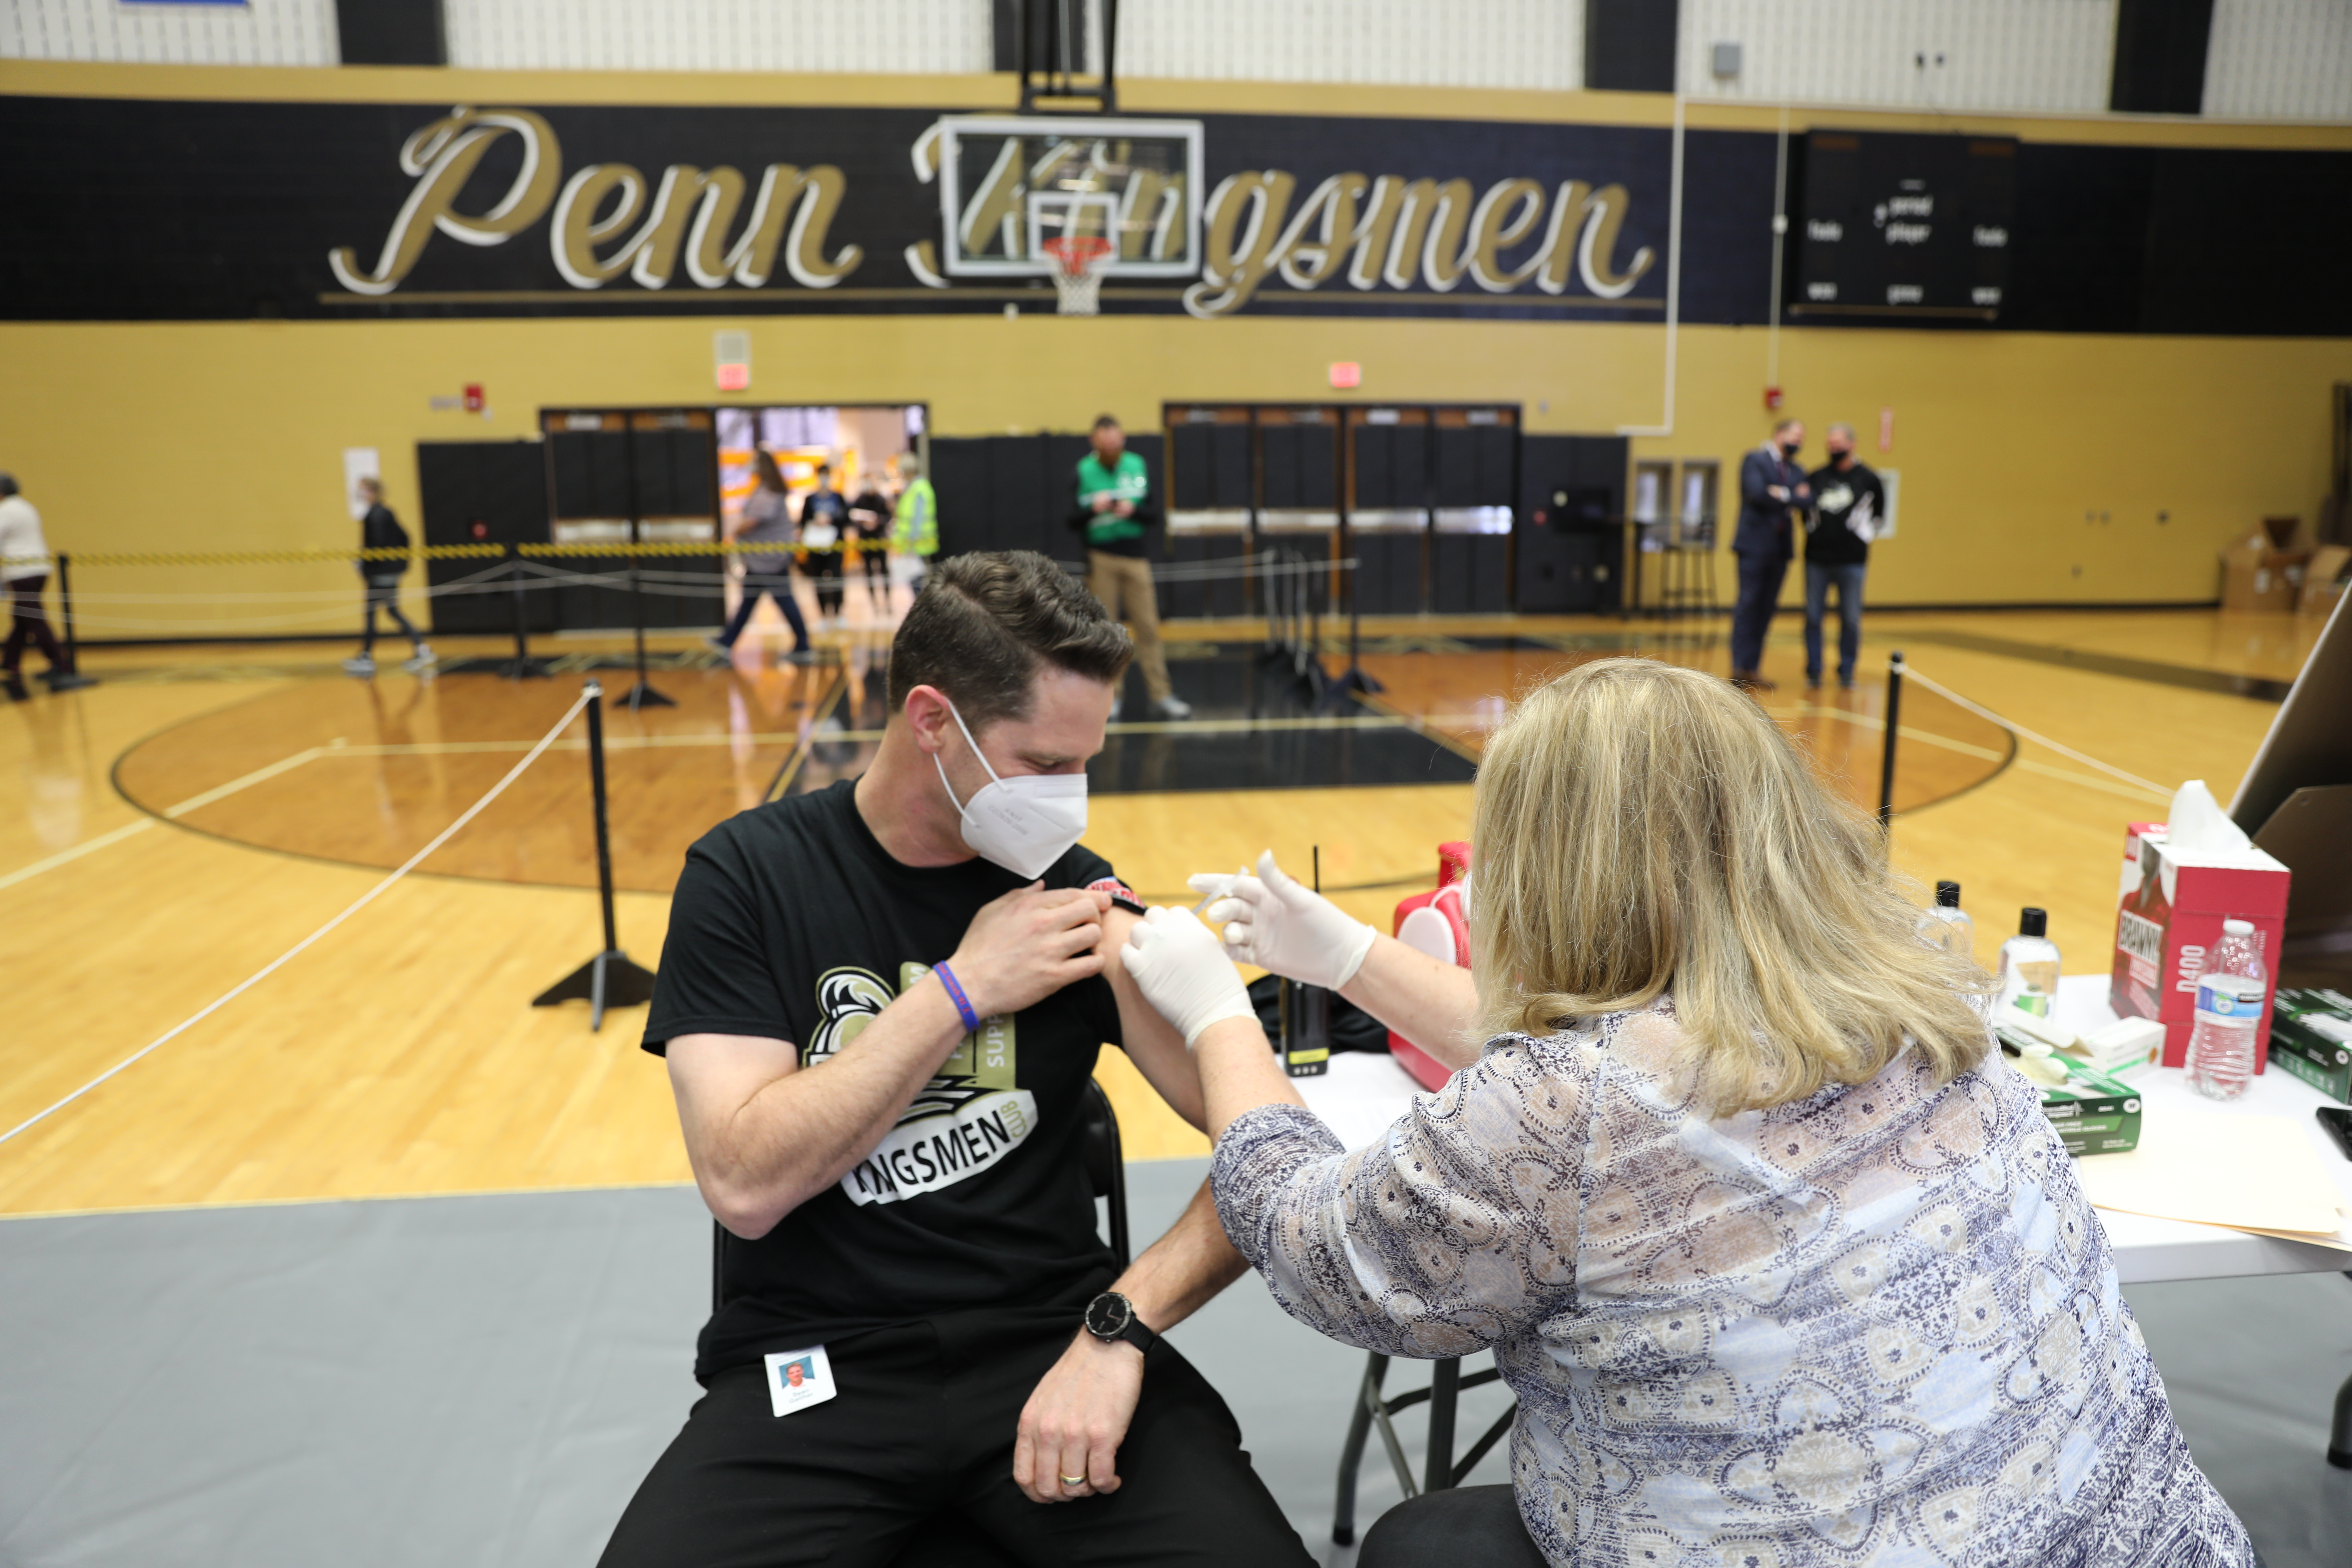 Meijer Clinical Pharmacy Specialist Amy Jennings administering vaccine to Penn Principal Sean Galiher